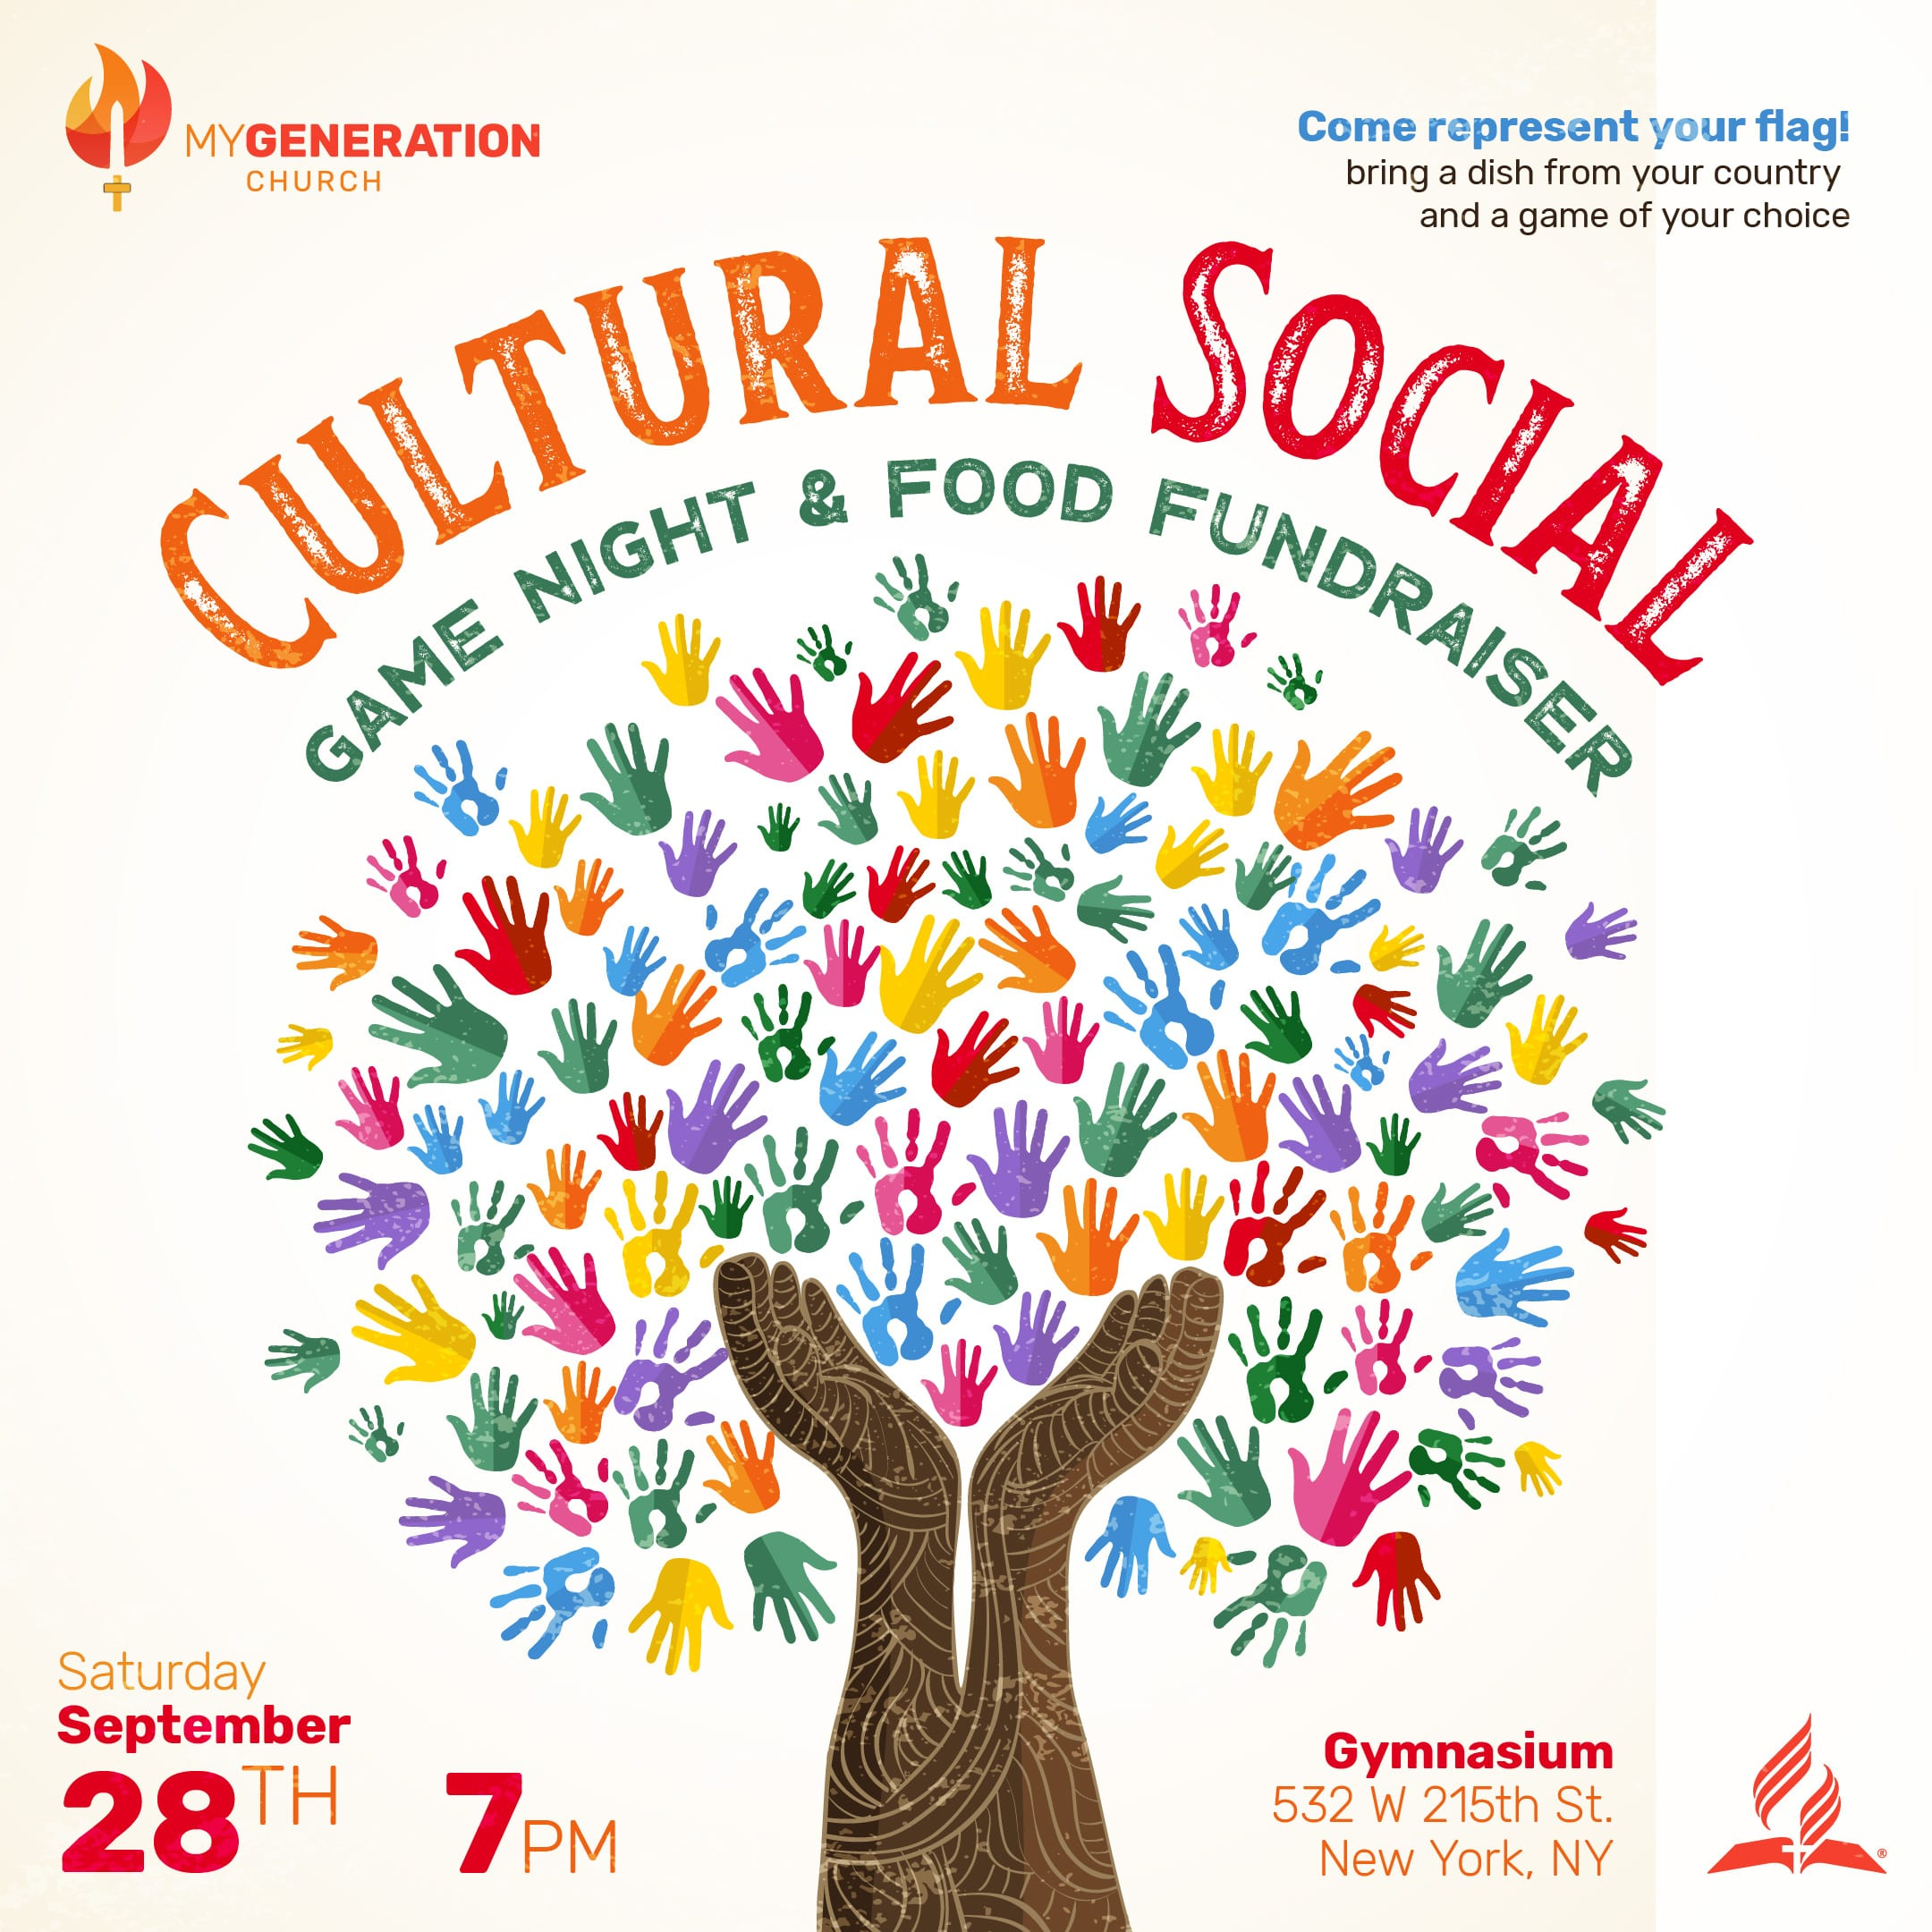 Cultural Social game night & food fundraiser